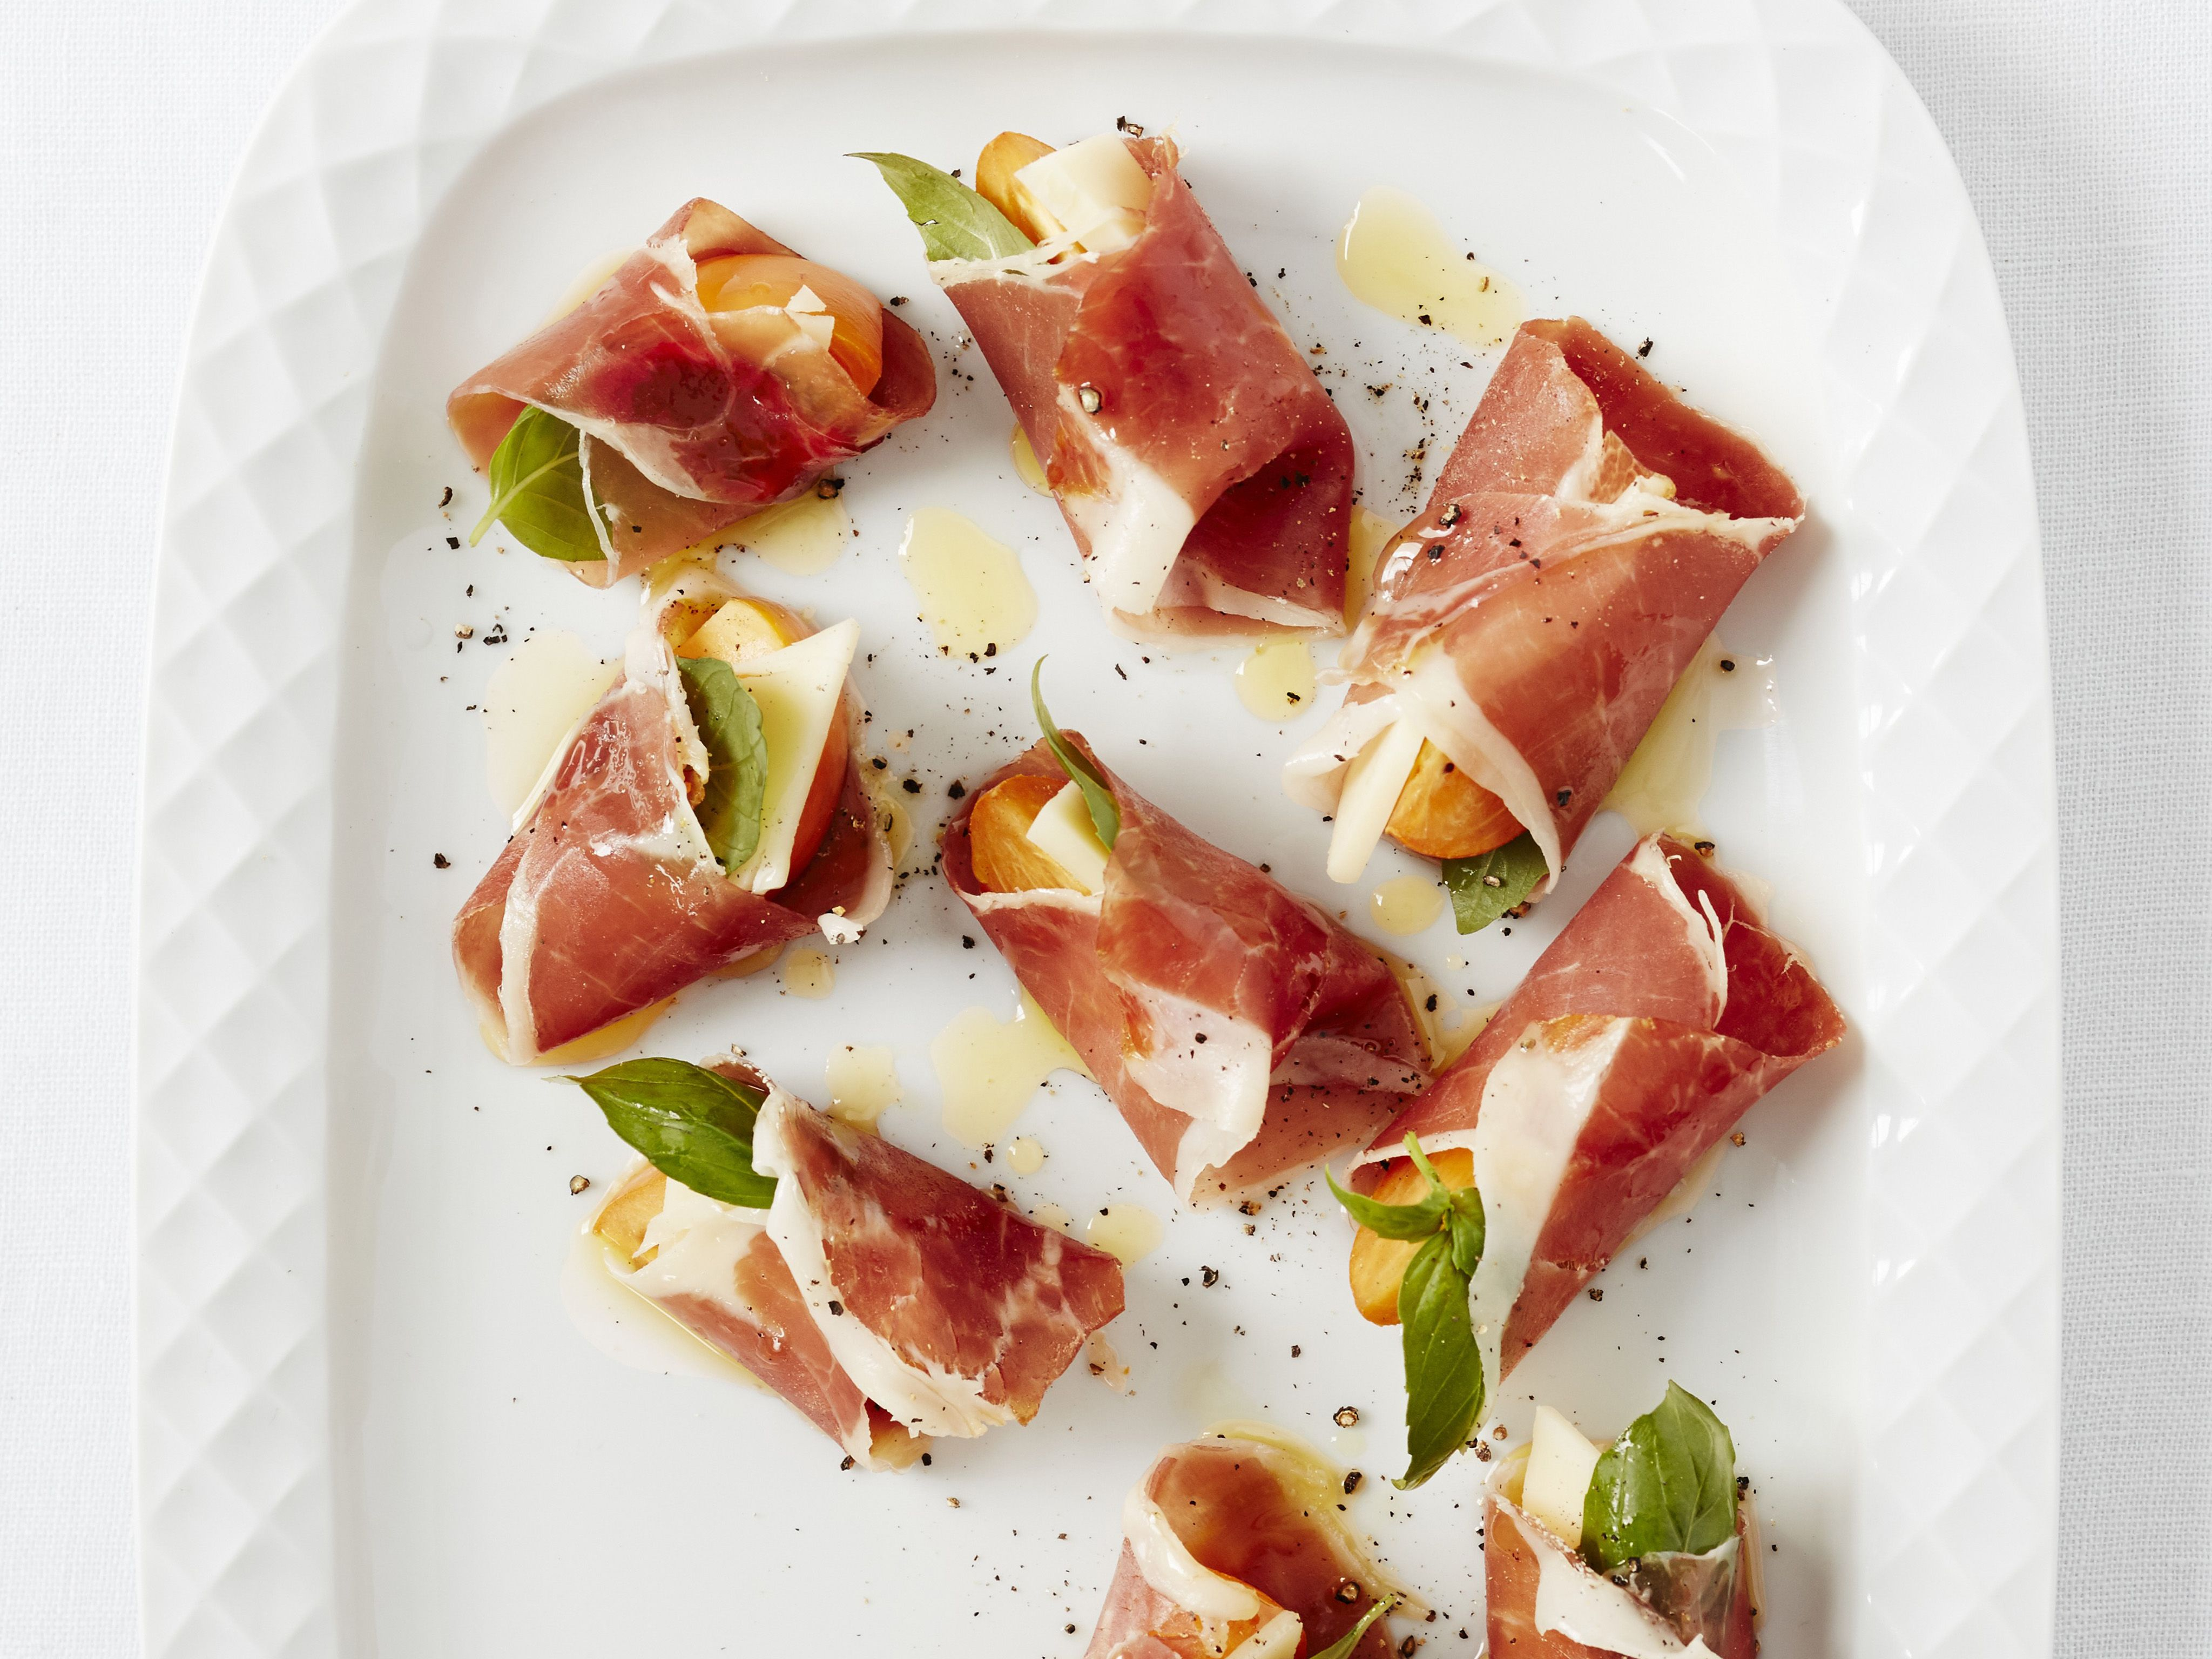 Prosciutto persimmons recipe persimmon recipes food and recipes prosciutto persimmons recipe from food network kitchen forumfinder Image collections